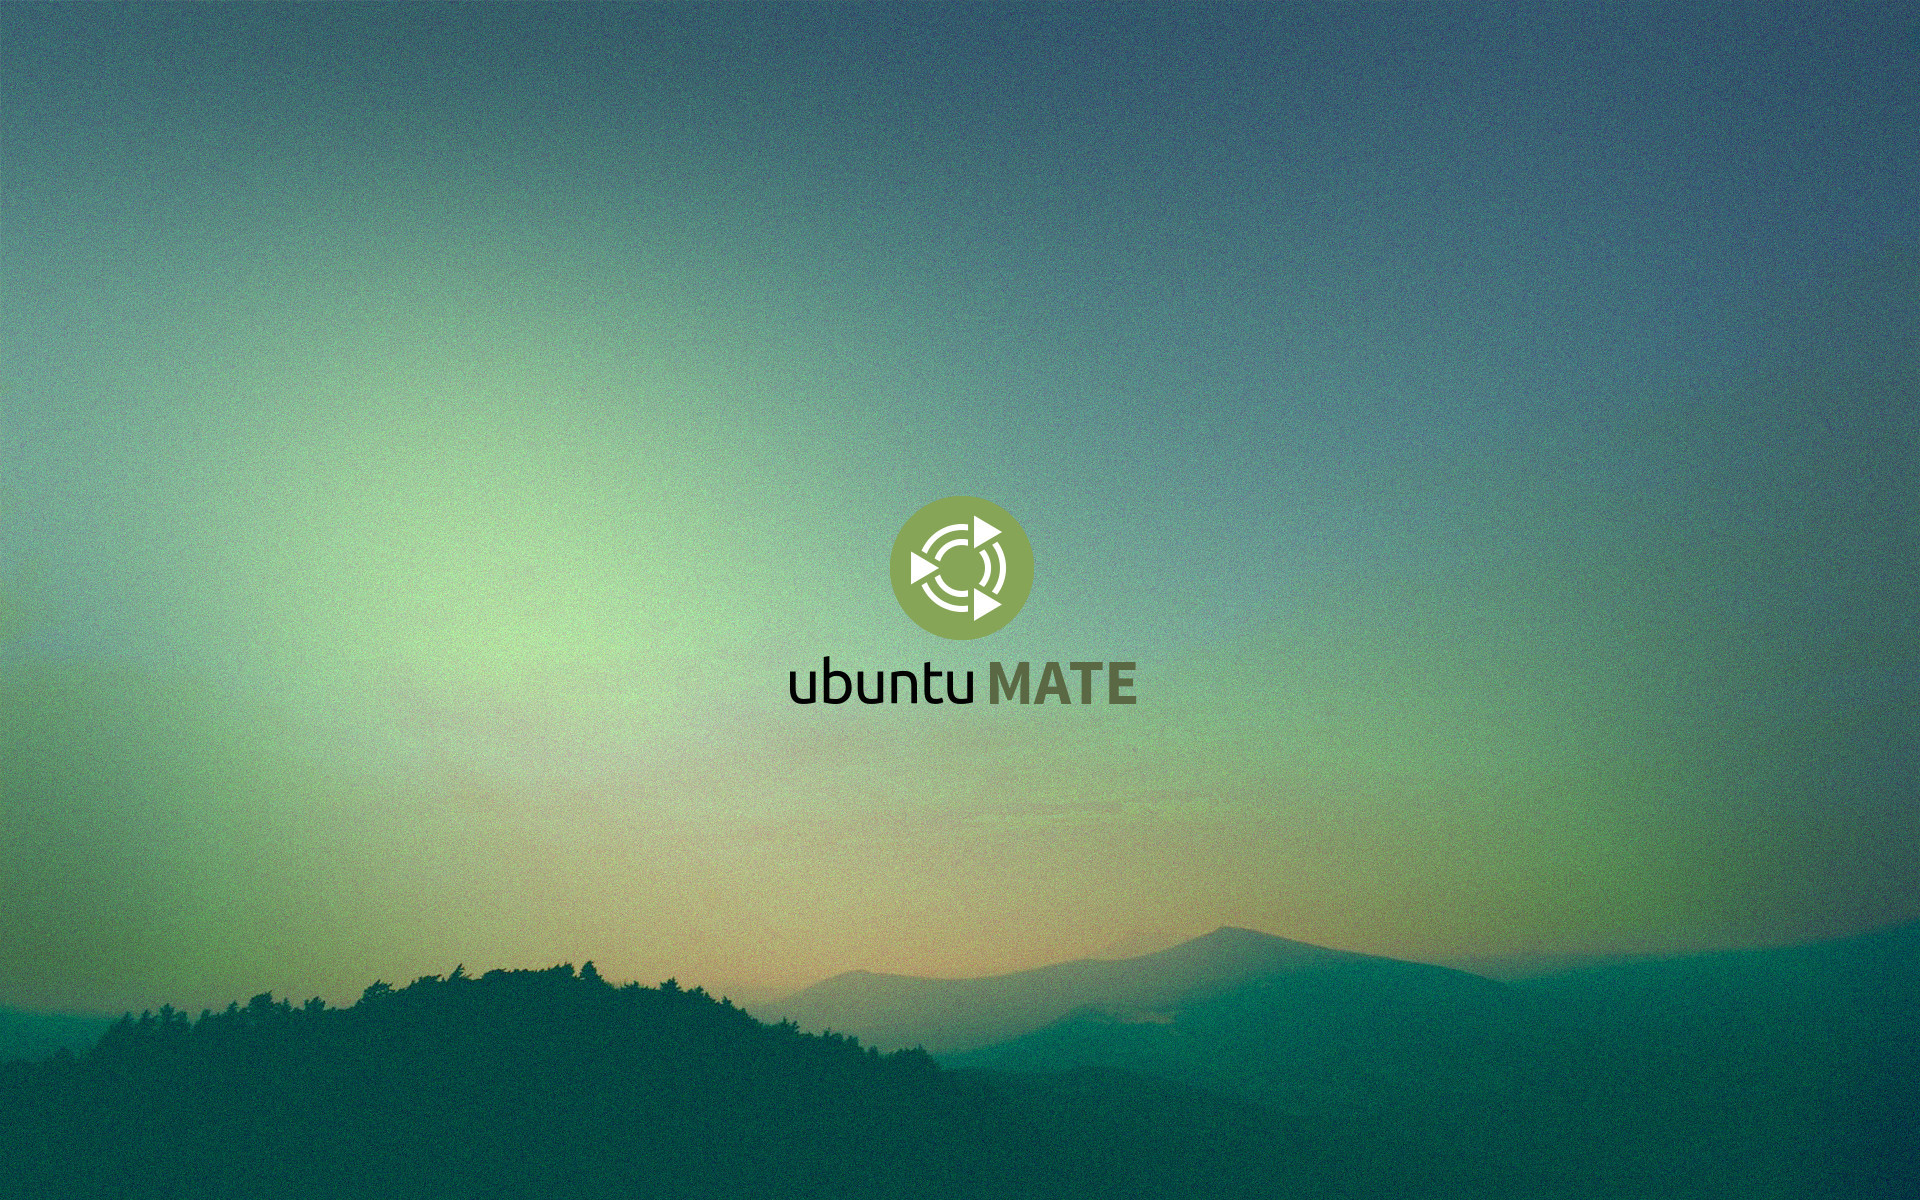 Love Wallpaper Hd Ubuntu : Ubuntu MATE Wallpapers - Artwork - Ubuntu MATE community